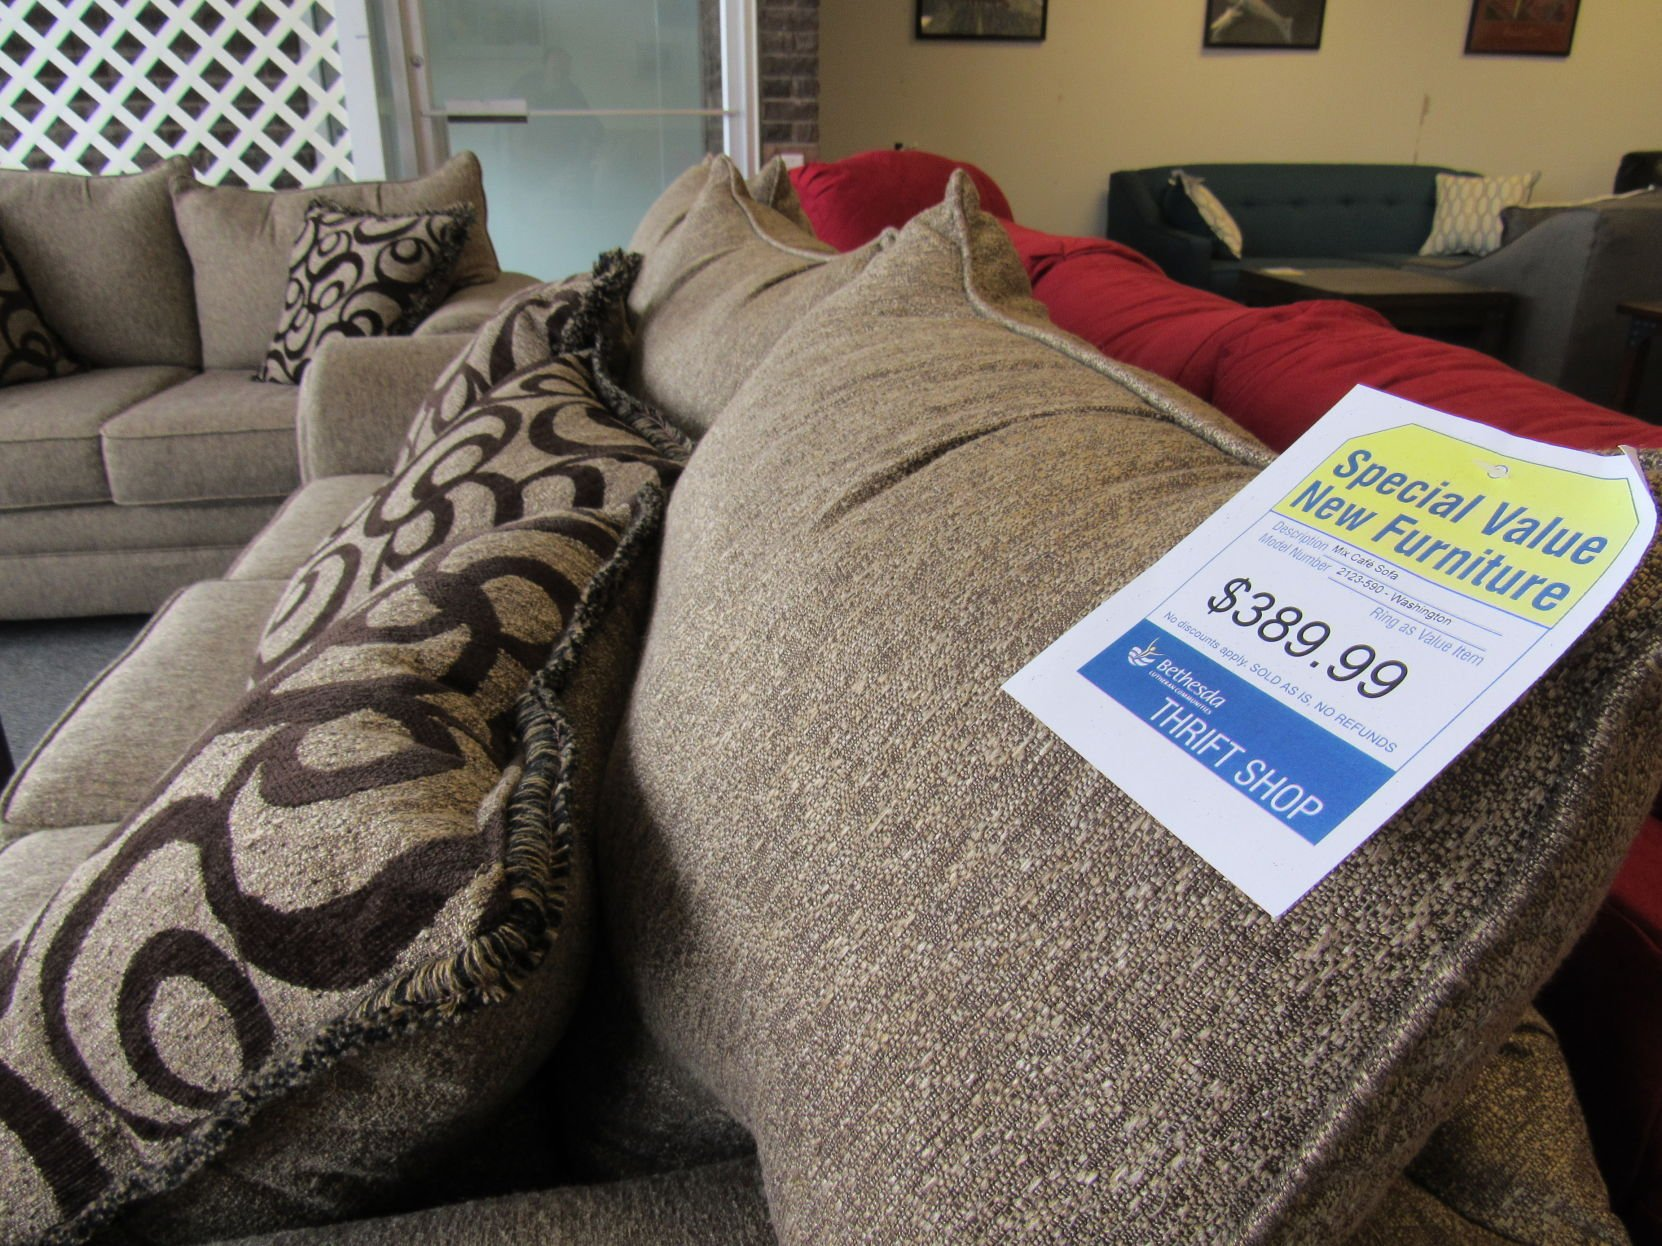 Bethesda Thrift Expands New Furniture Offerings | Madison Wisconsin  Business News | Host.madison.com